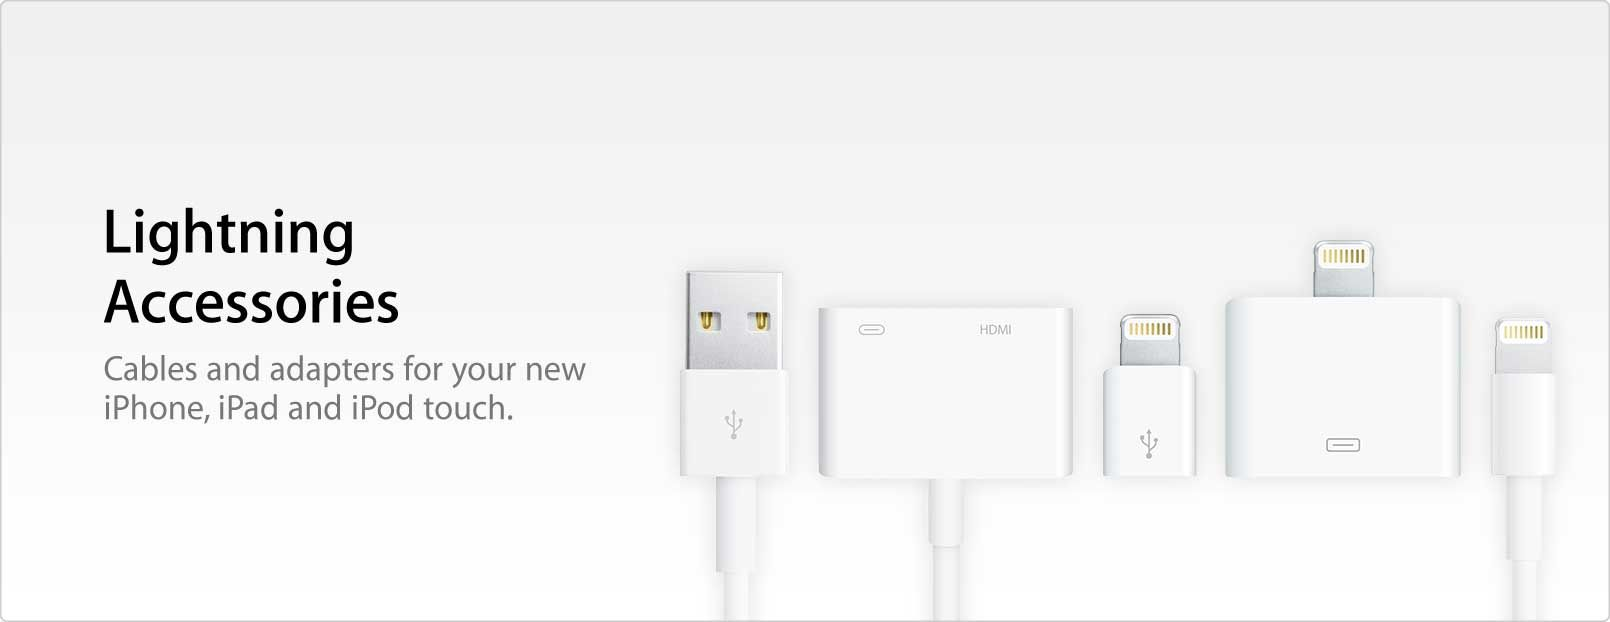 Lightning Accessories. Get free shipping on cables and adapters for your new iPhone, iPad, or iPod touch.